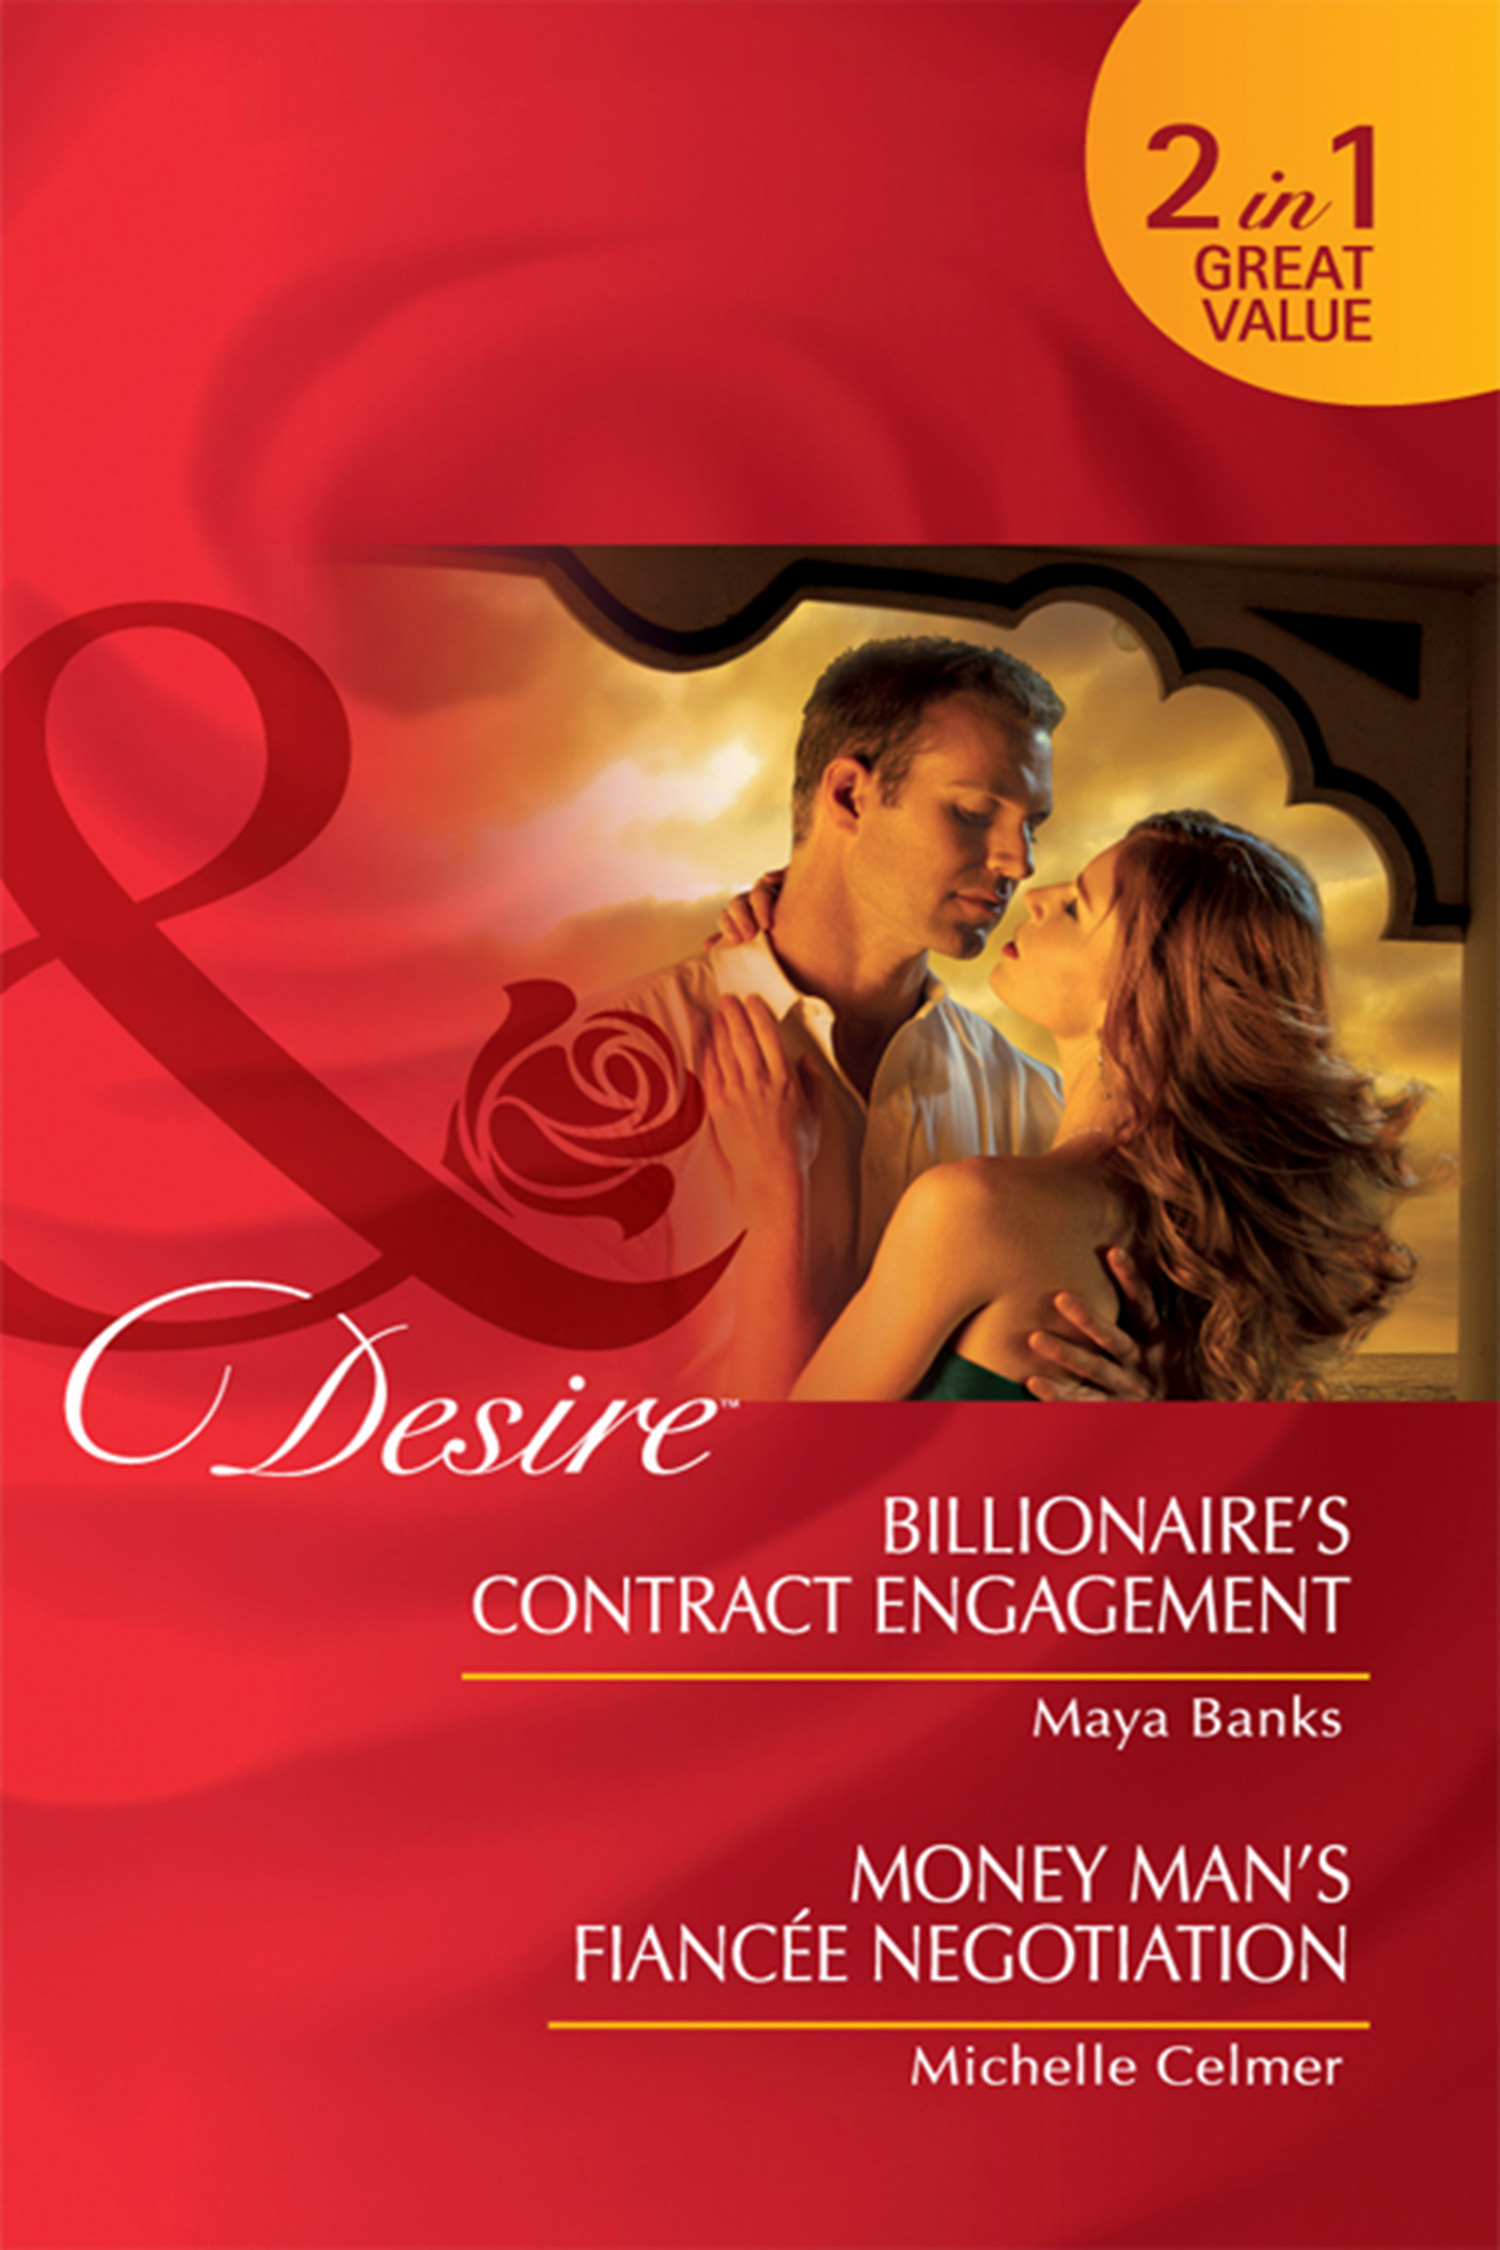 Billionaire's Contract Engagement / Money Man's Fiancée Negotiation